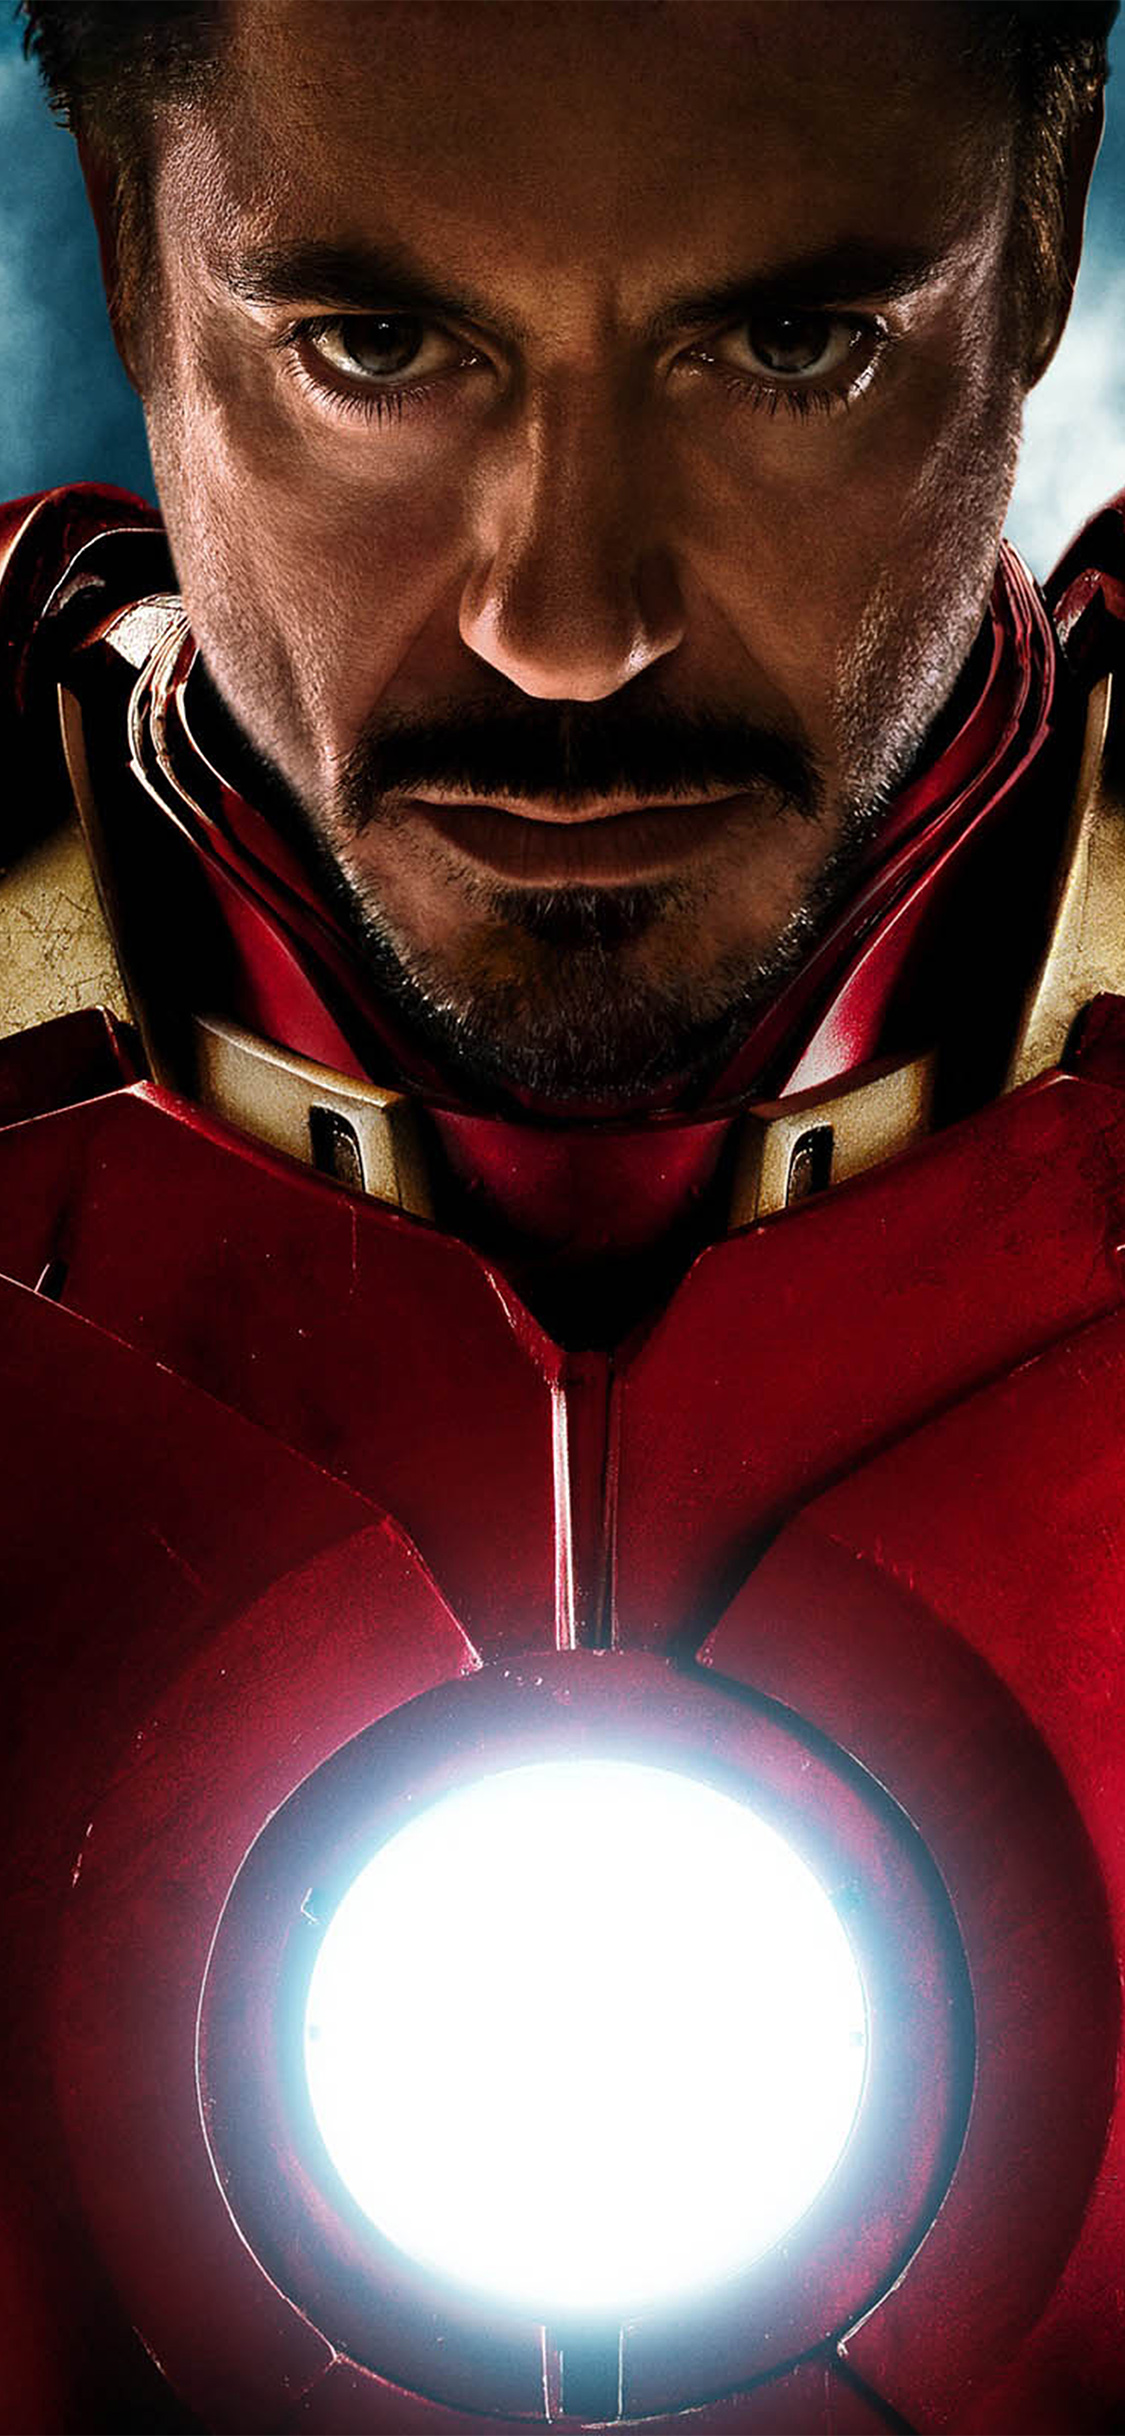 Ironman angry hero superhero red avengers iPhone wallpaper